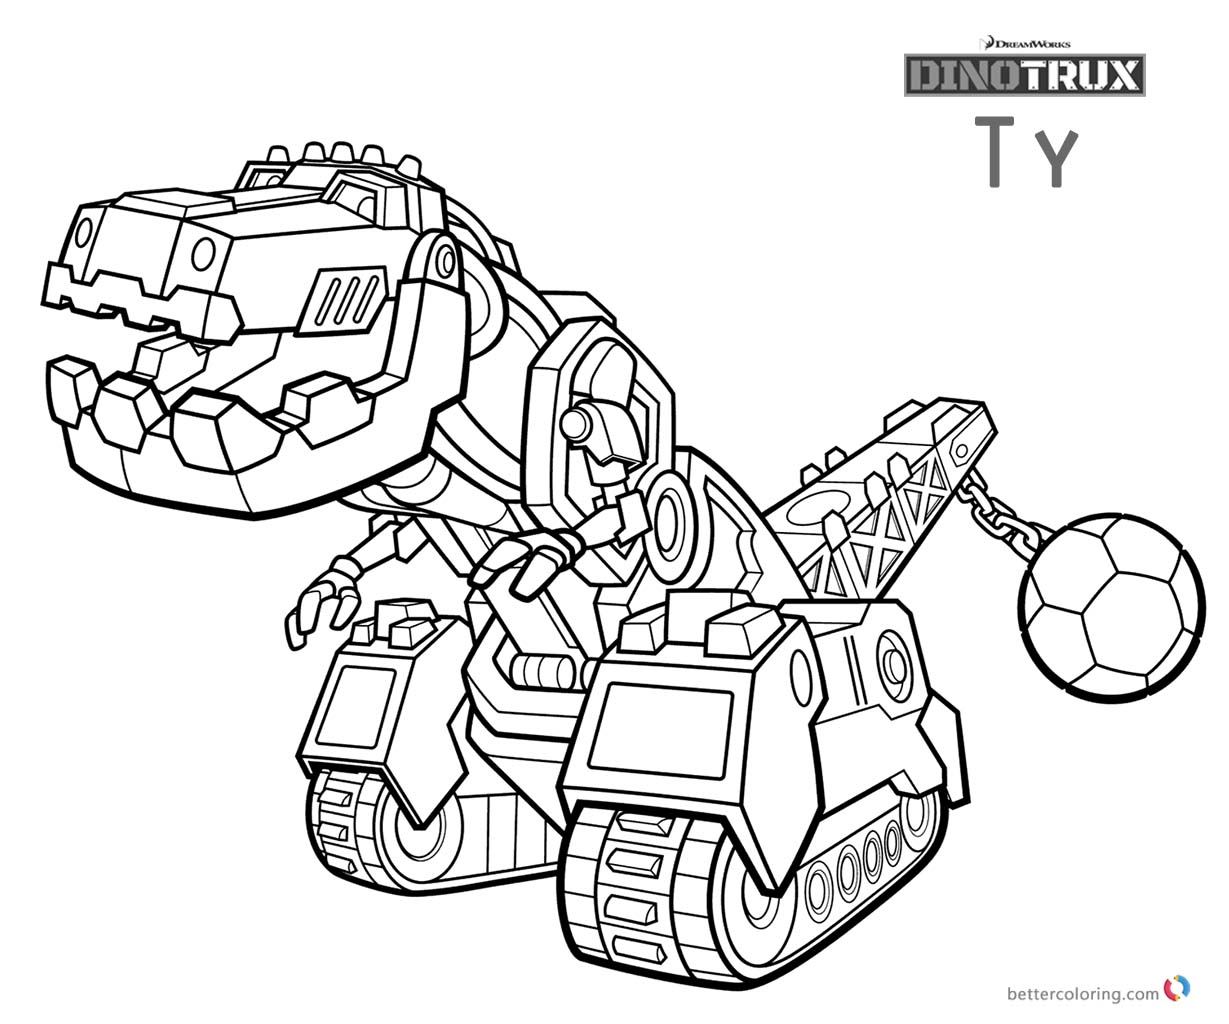 dinotrux ty coloring pages free printable coloring pages